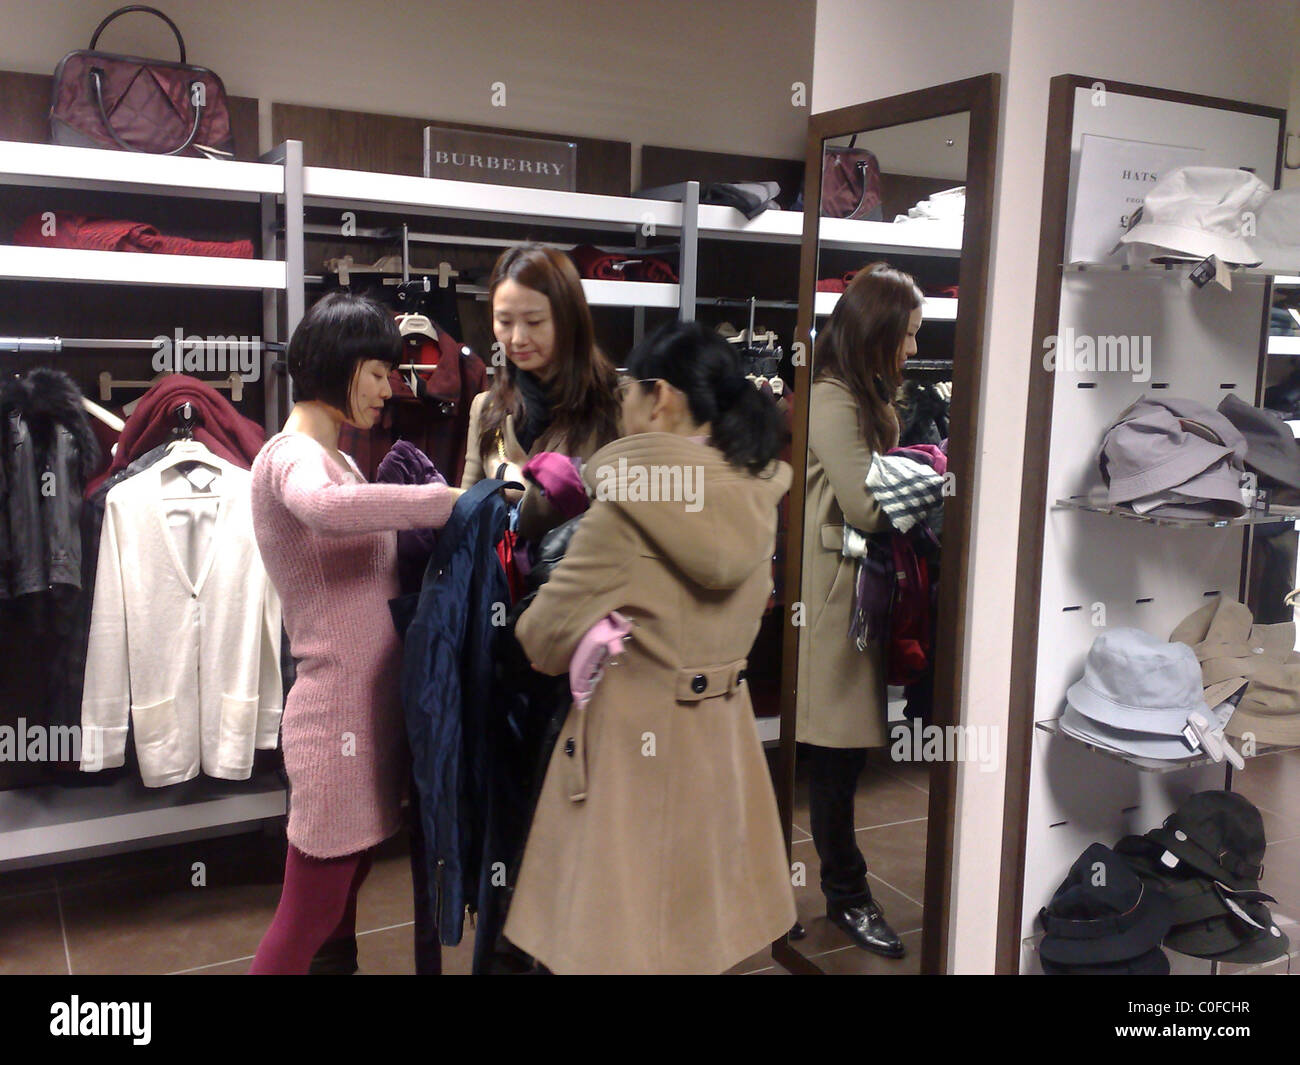 burrberry outlet shsd  CHINESE SHOPPERS AT BURBERRY OUTLET DISCOUNT STORE IN HACKNEY, LONDON